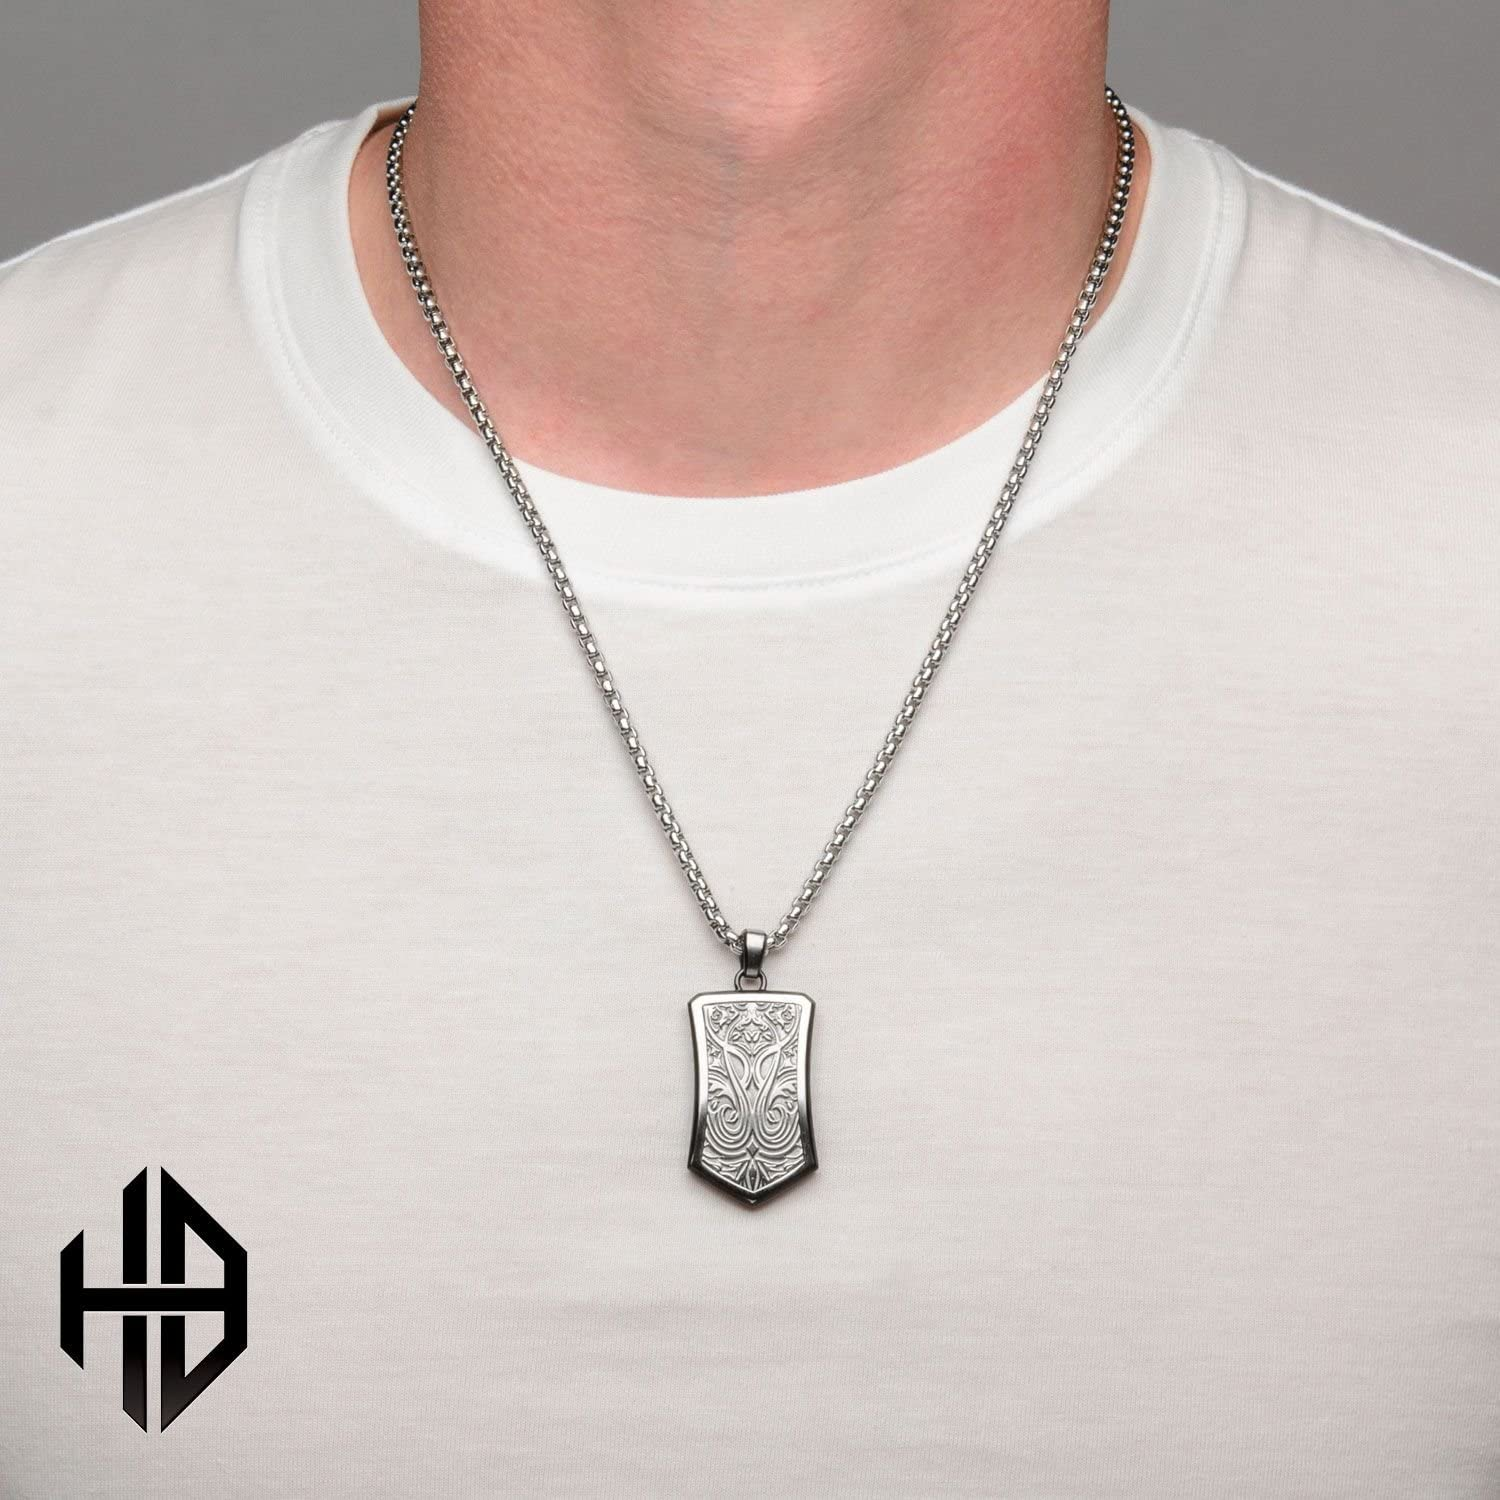 Hollis Bahringer Mens Stainless Steel Bold Ornate Texture Dog Tag Pendant with Chain